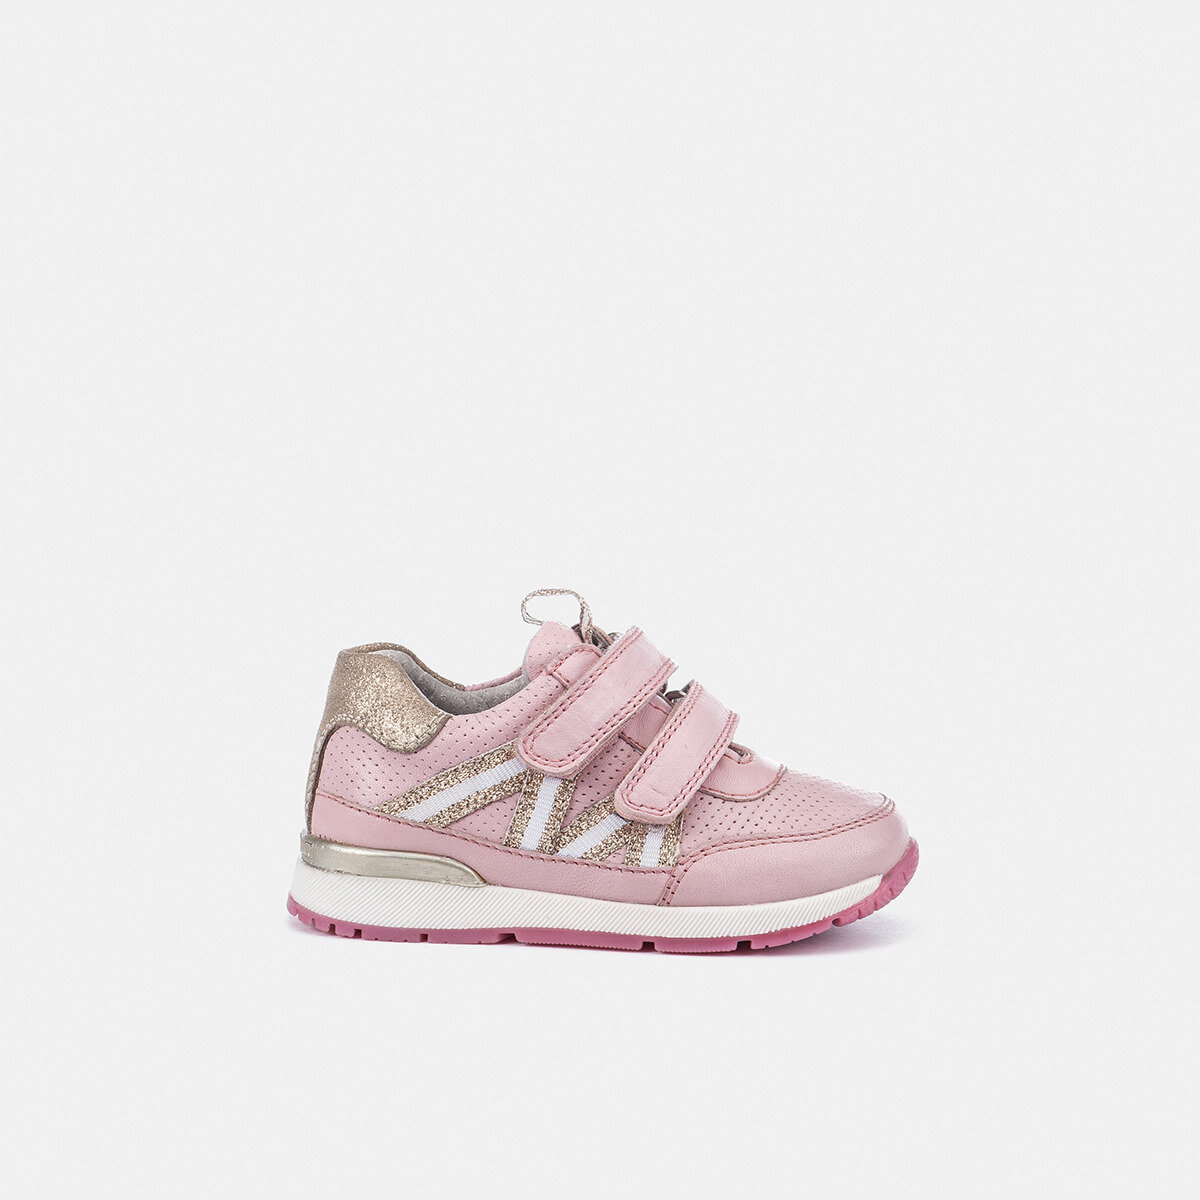 SQUISH PINK/LT GOLD Girl Sneakers